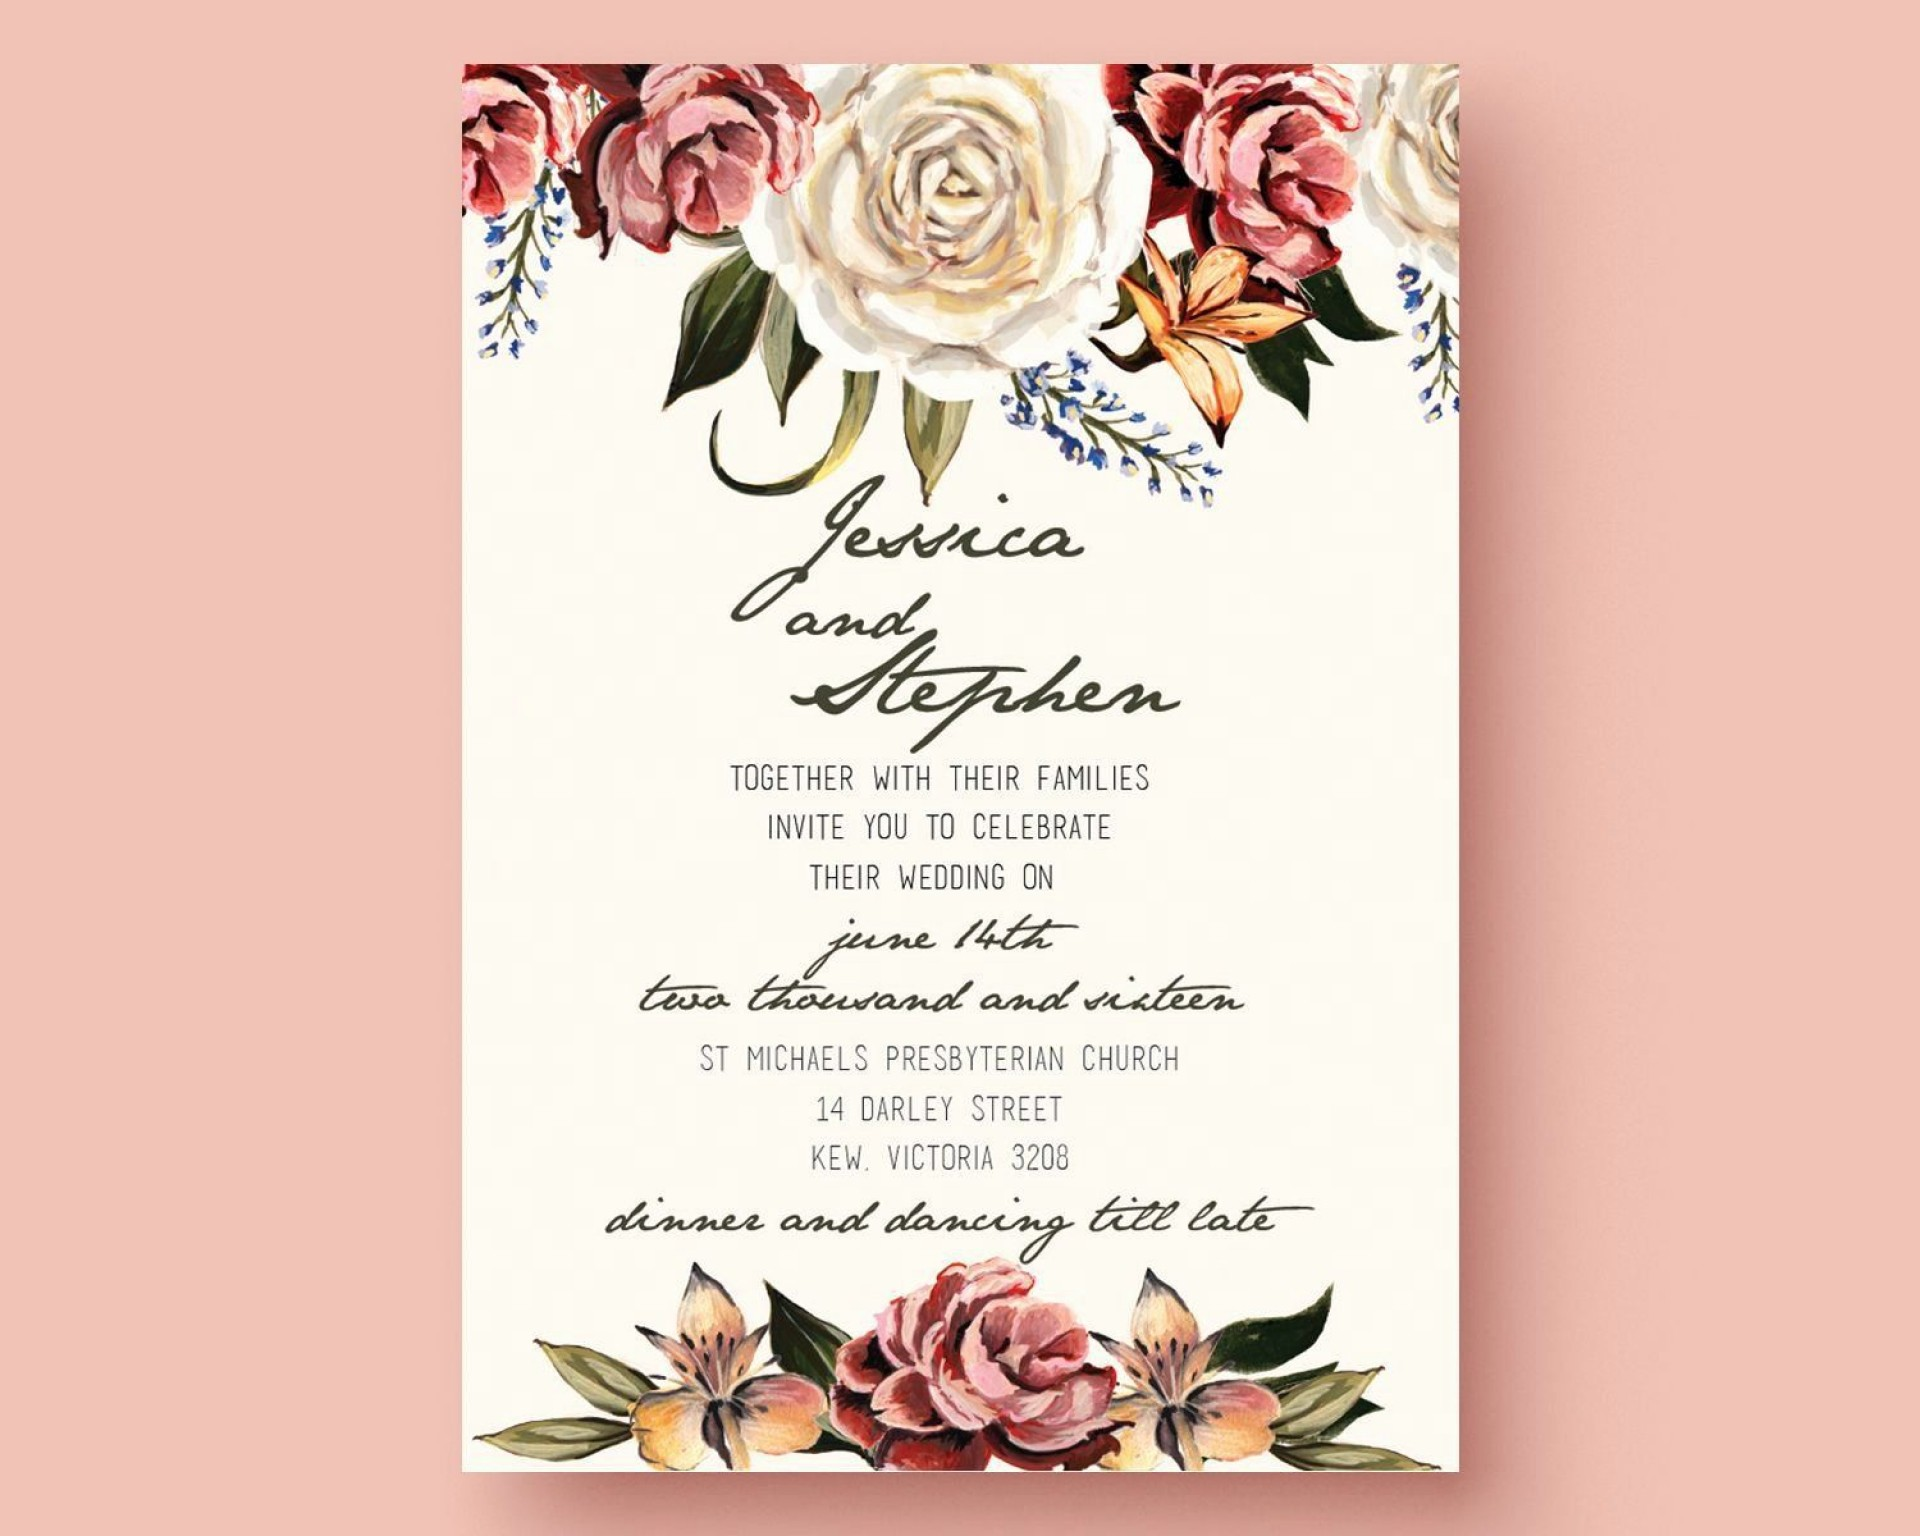 Invitation Template Free Download Addictionary